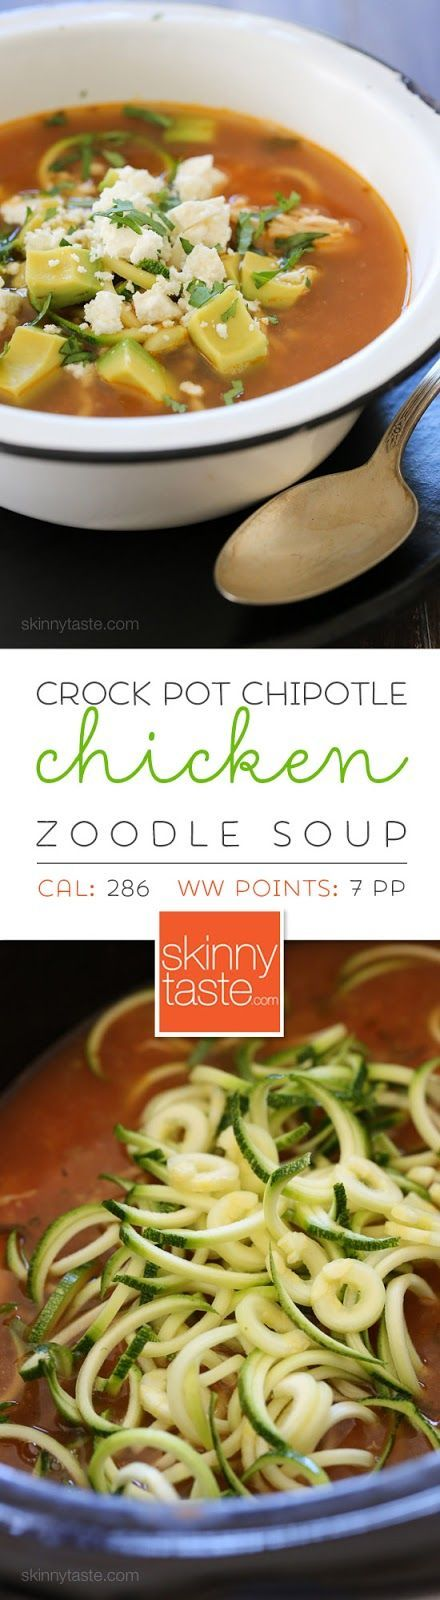 """Slow Cooker Chipotle Chicken Zucchini """"Fideo"""" Soup – made with spiralized zucchini noodles!"""